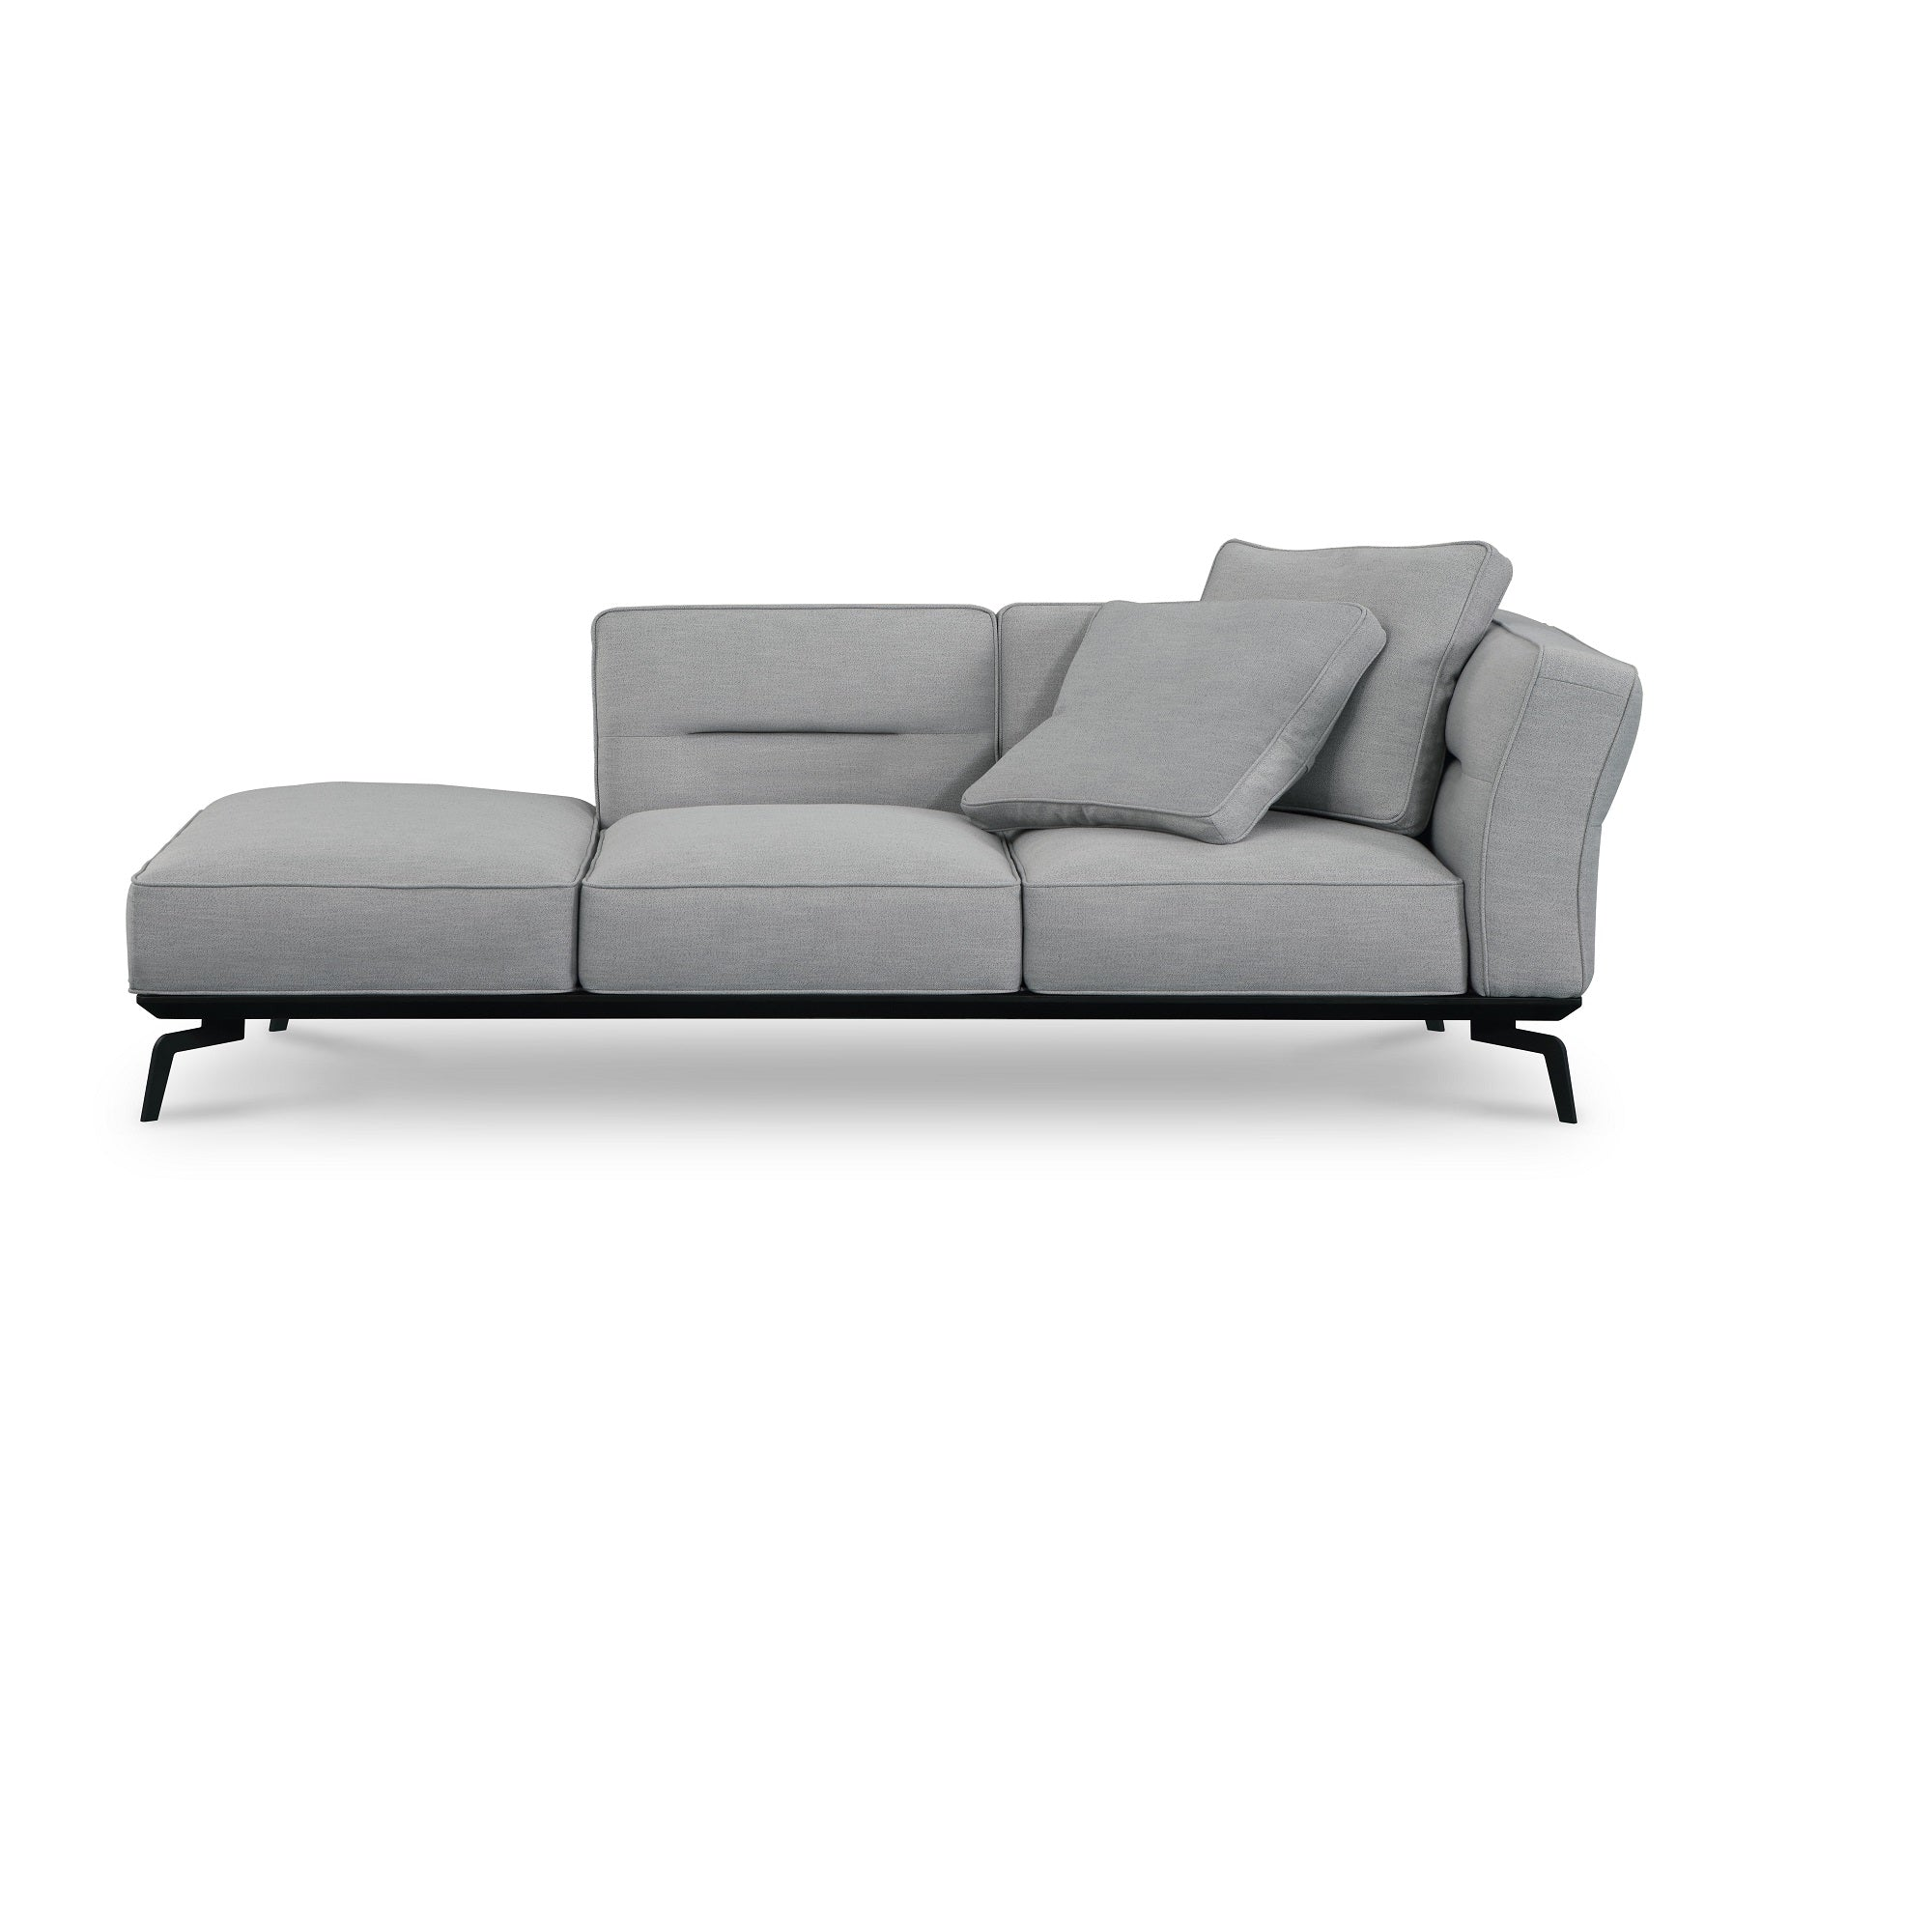 Merino Chaise Lounge